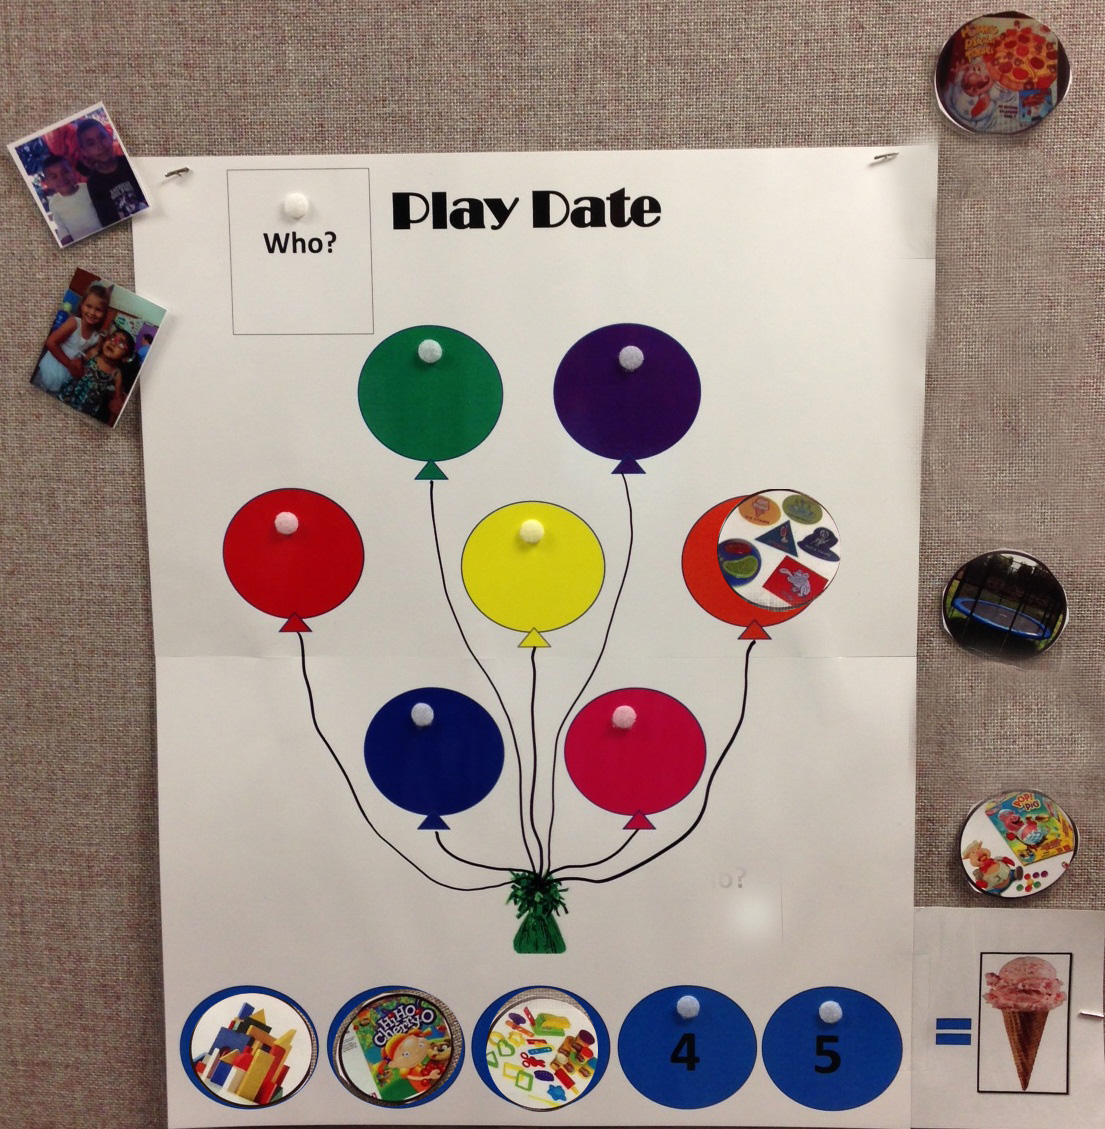 Playdate poster with the balloons in the middle.